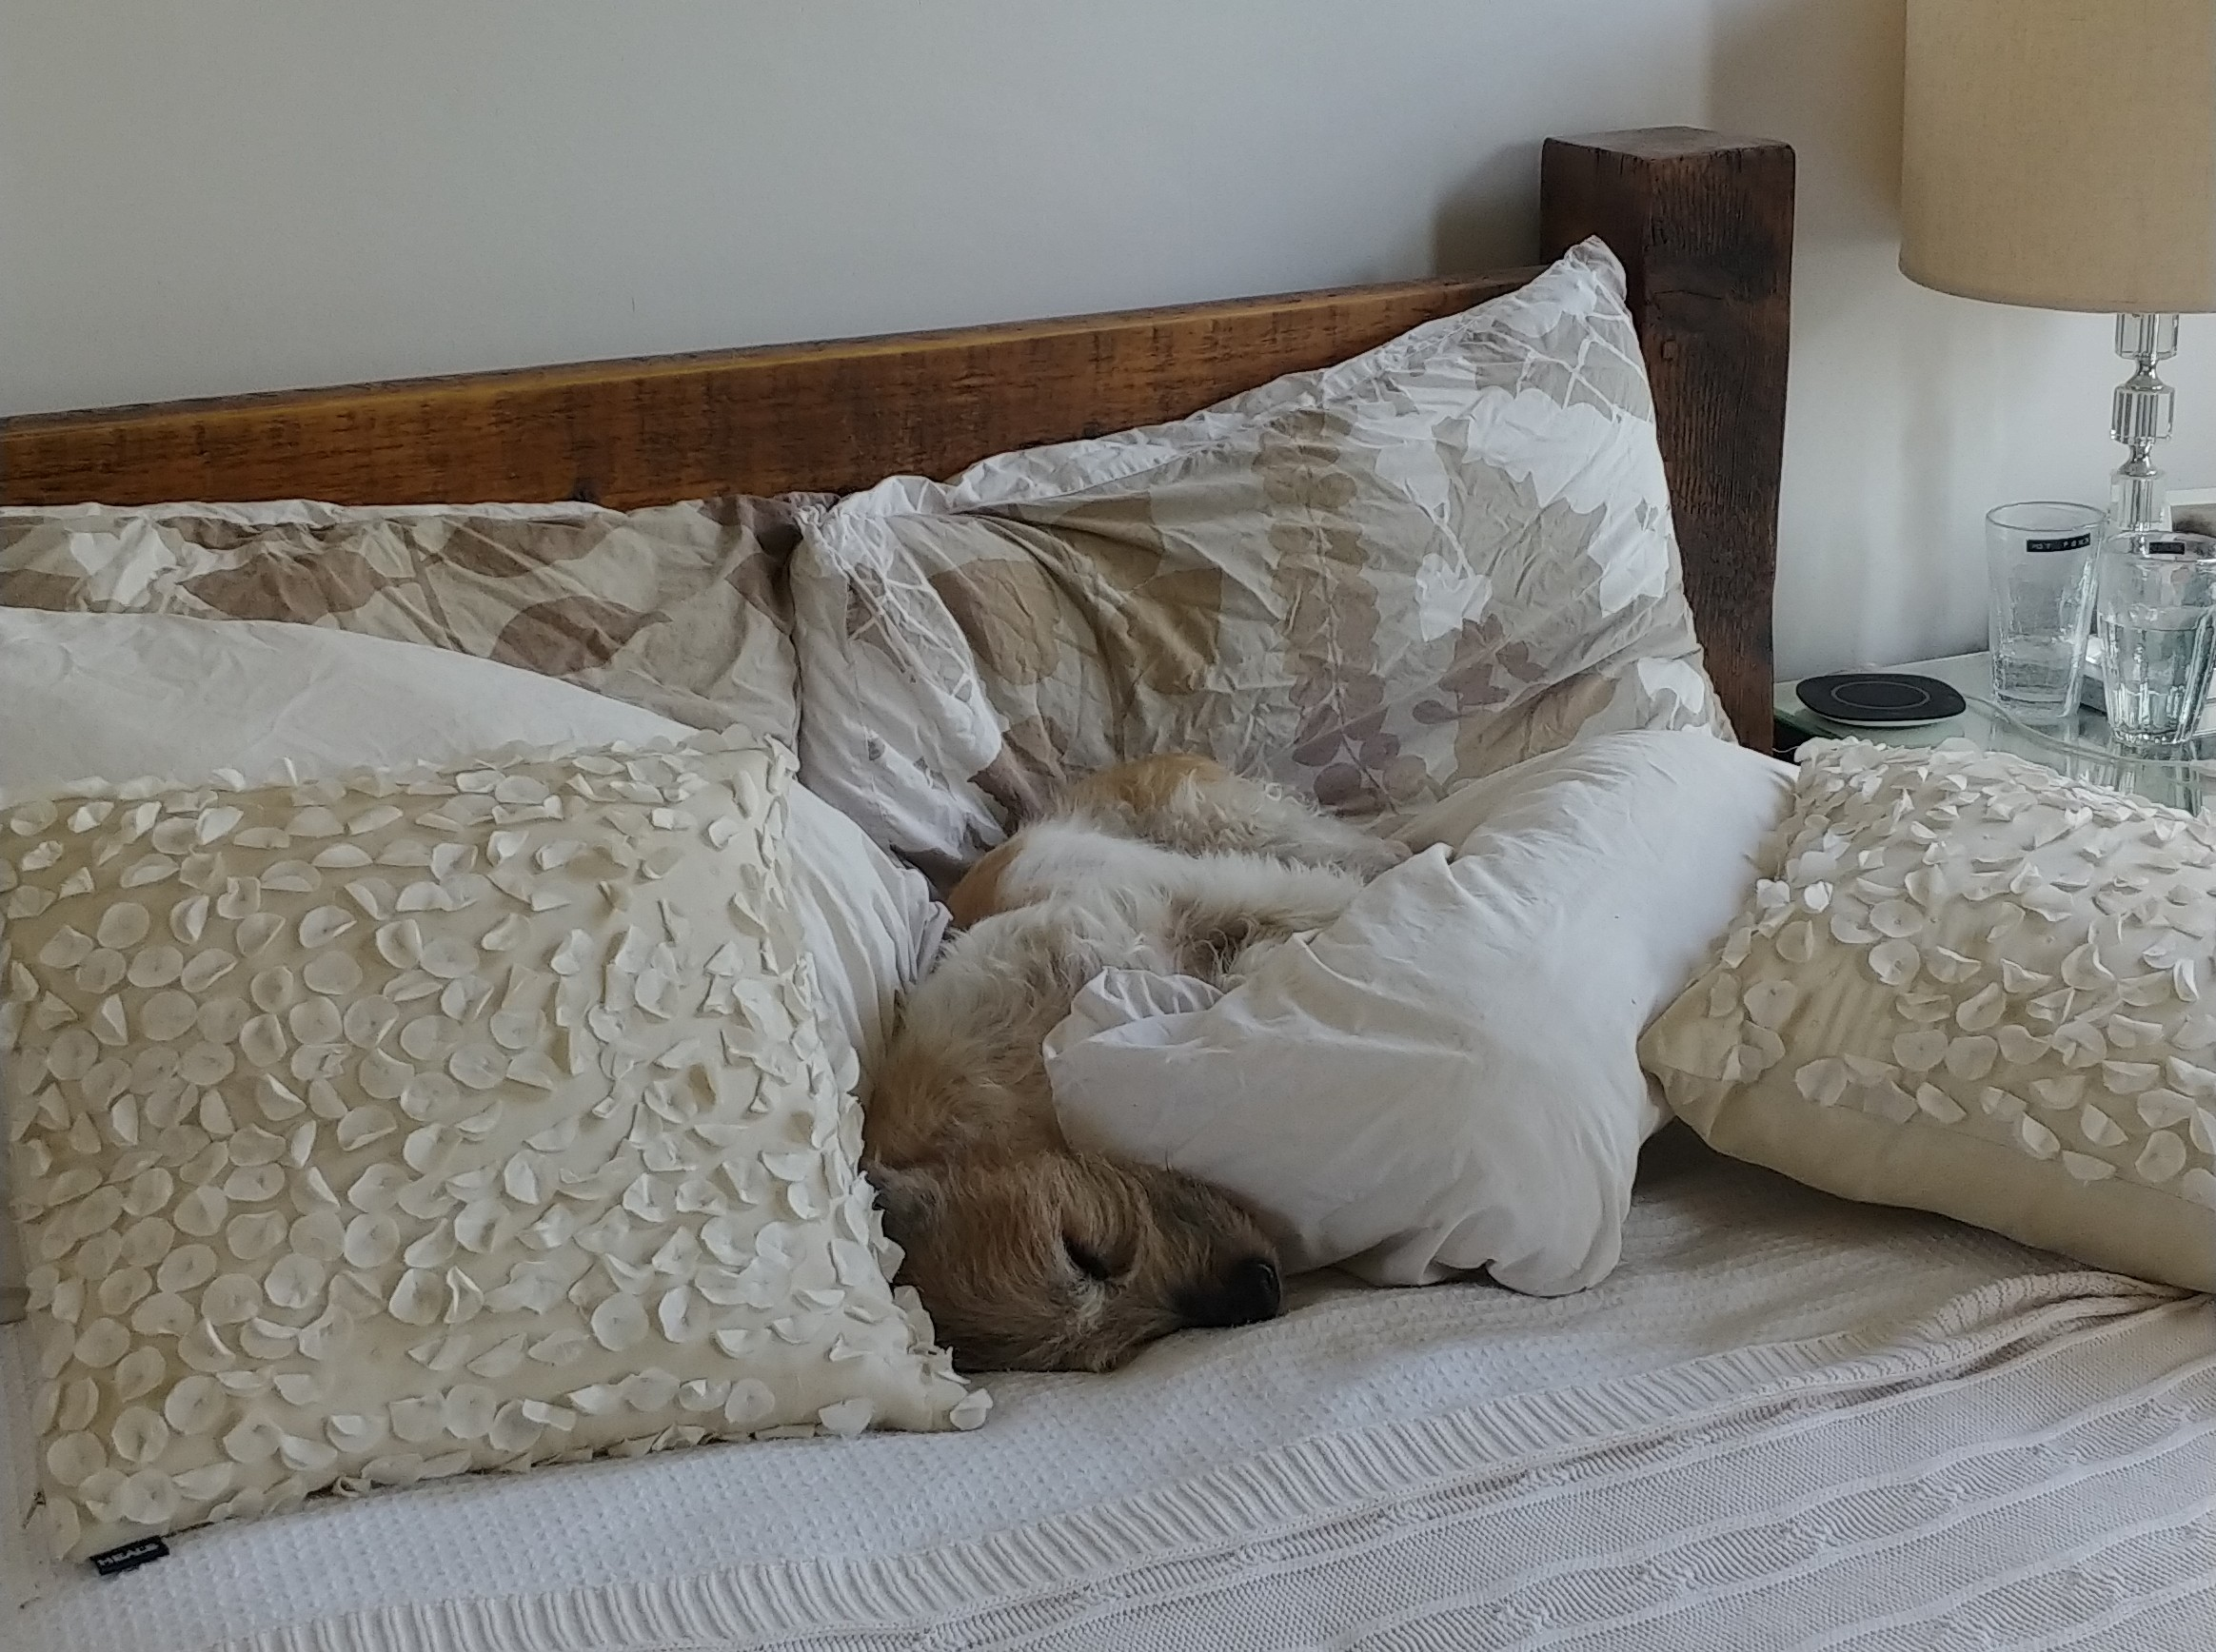 Mr Enrique doesn't understand about pillow styling.